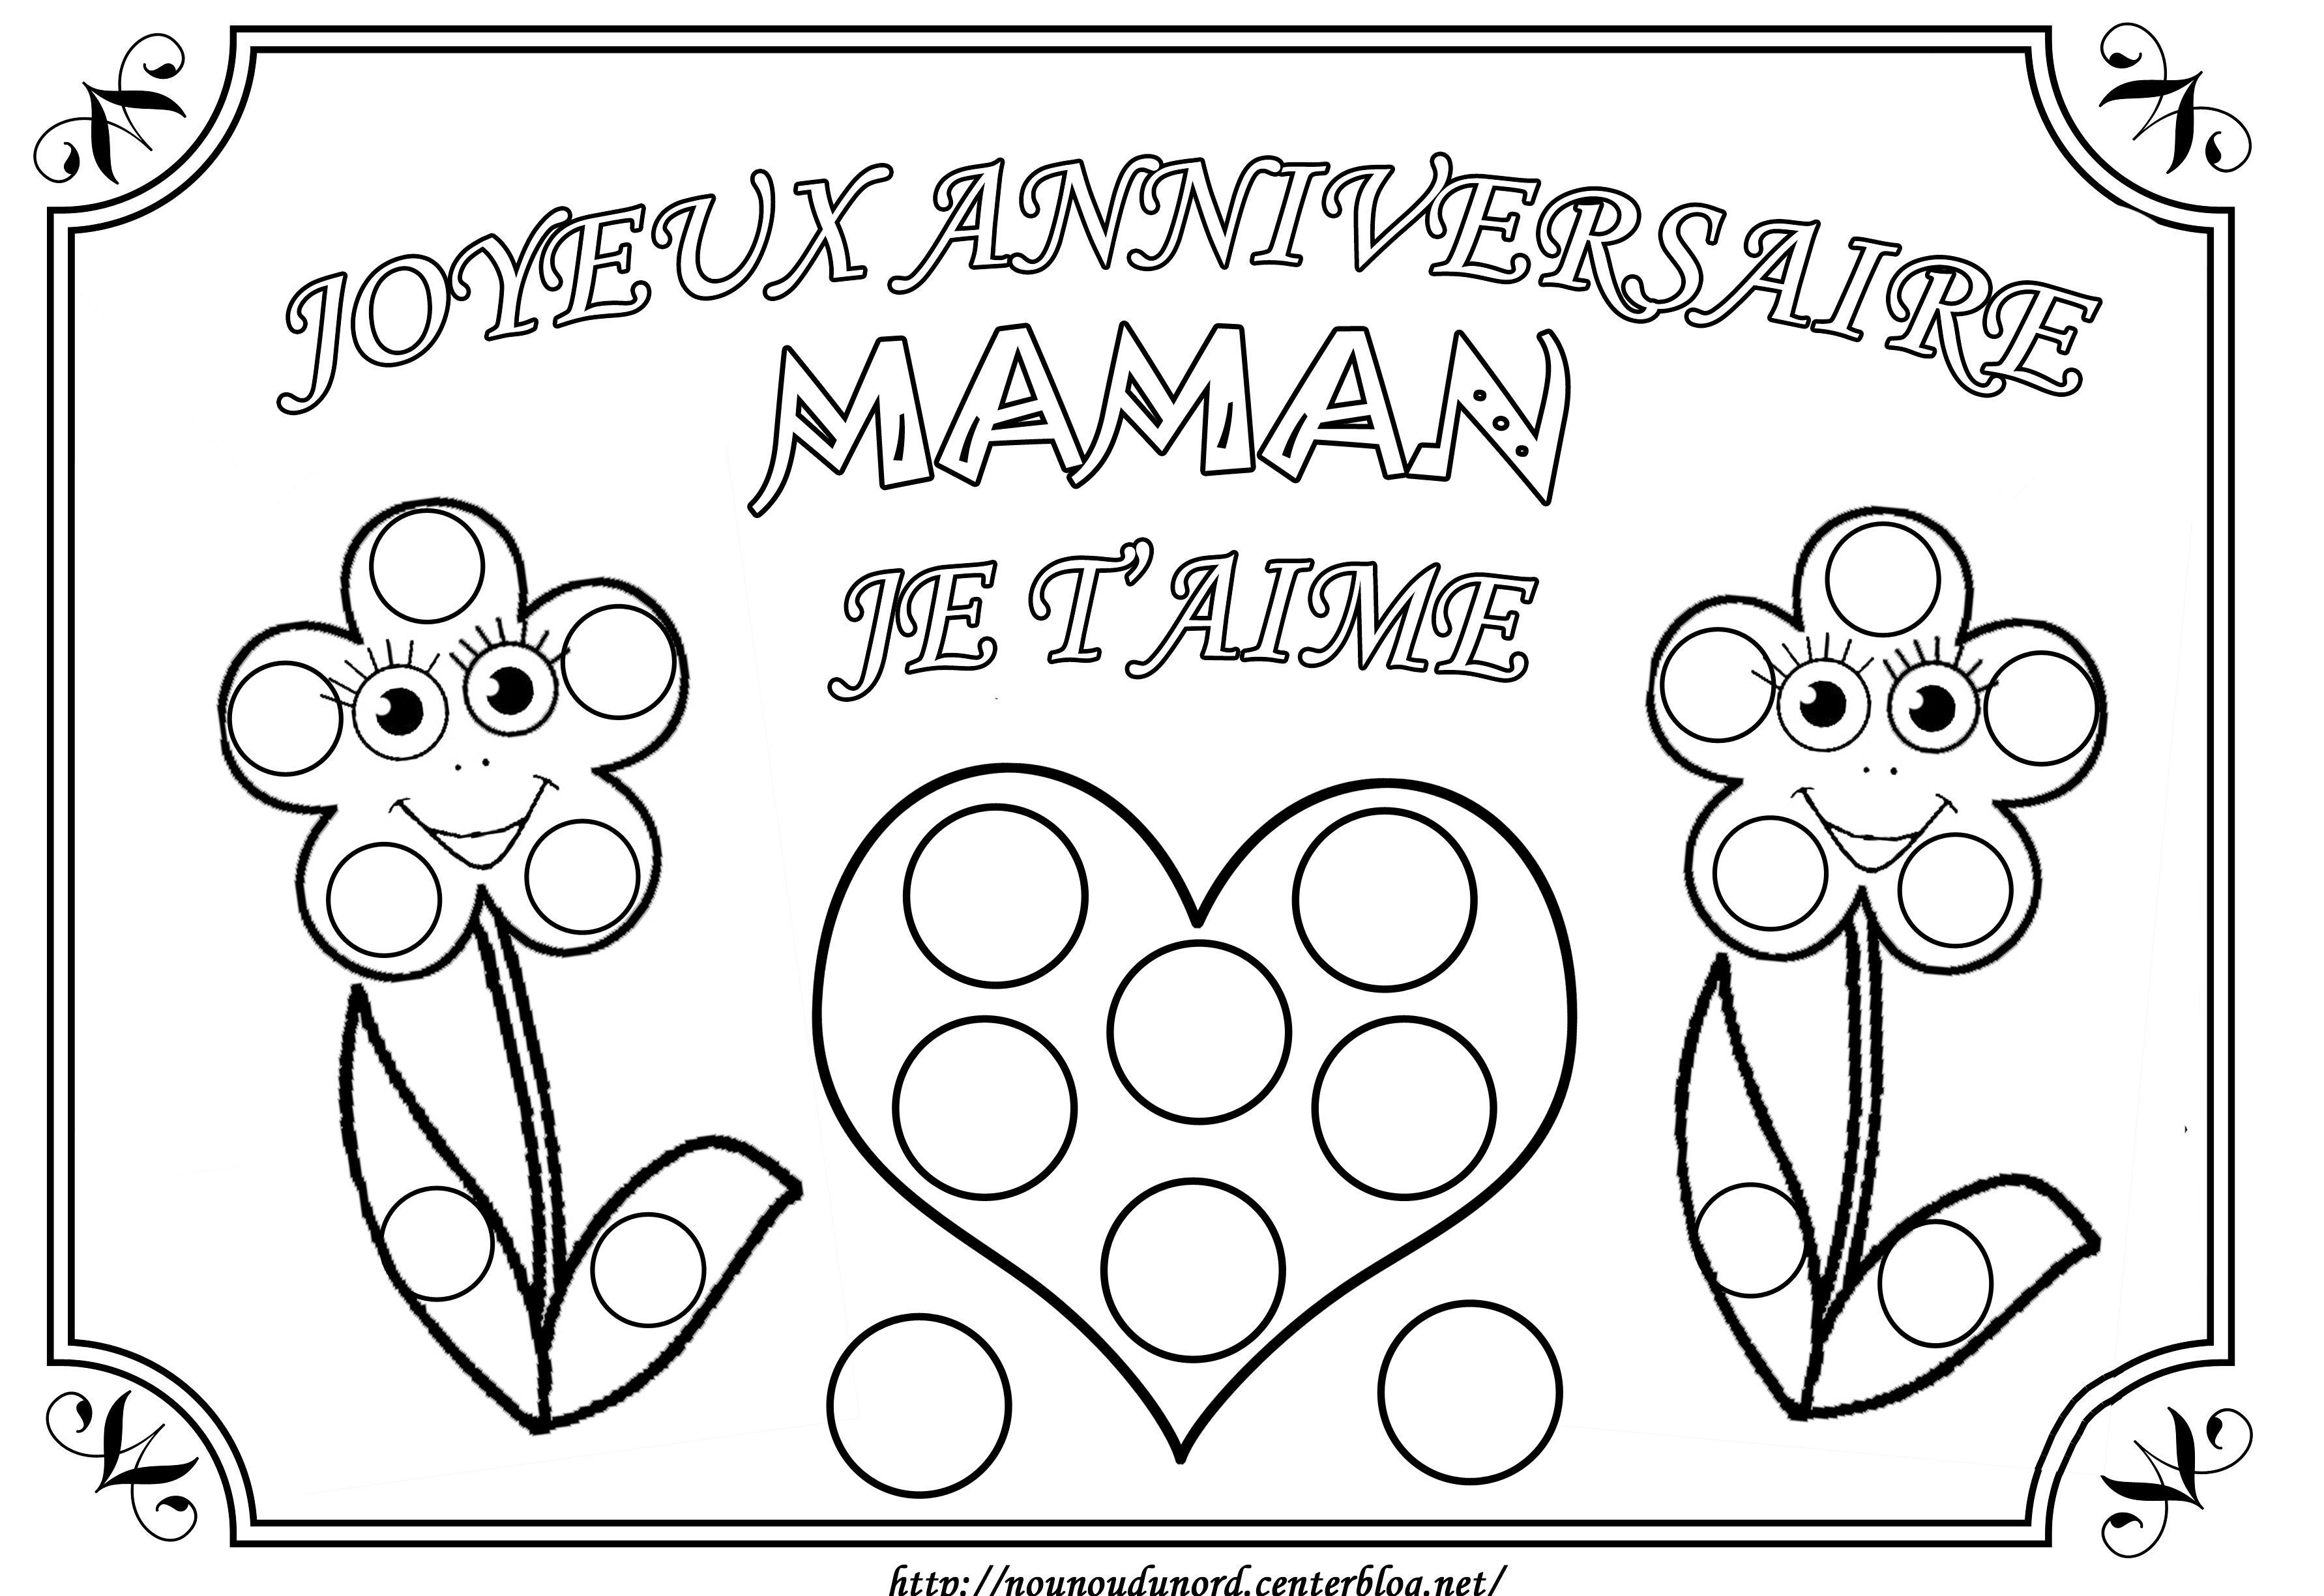 Coloriage Coeur Je Taime Mamie.Coloriage Pour Maman Je T Aime 0 On With Hd Resolution Coloriage